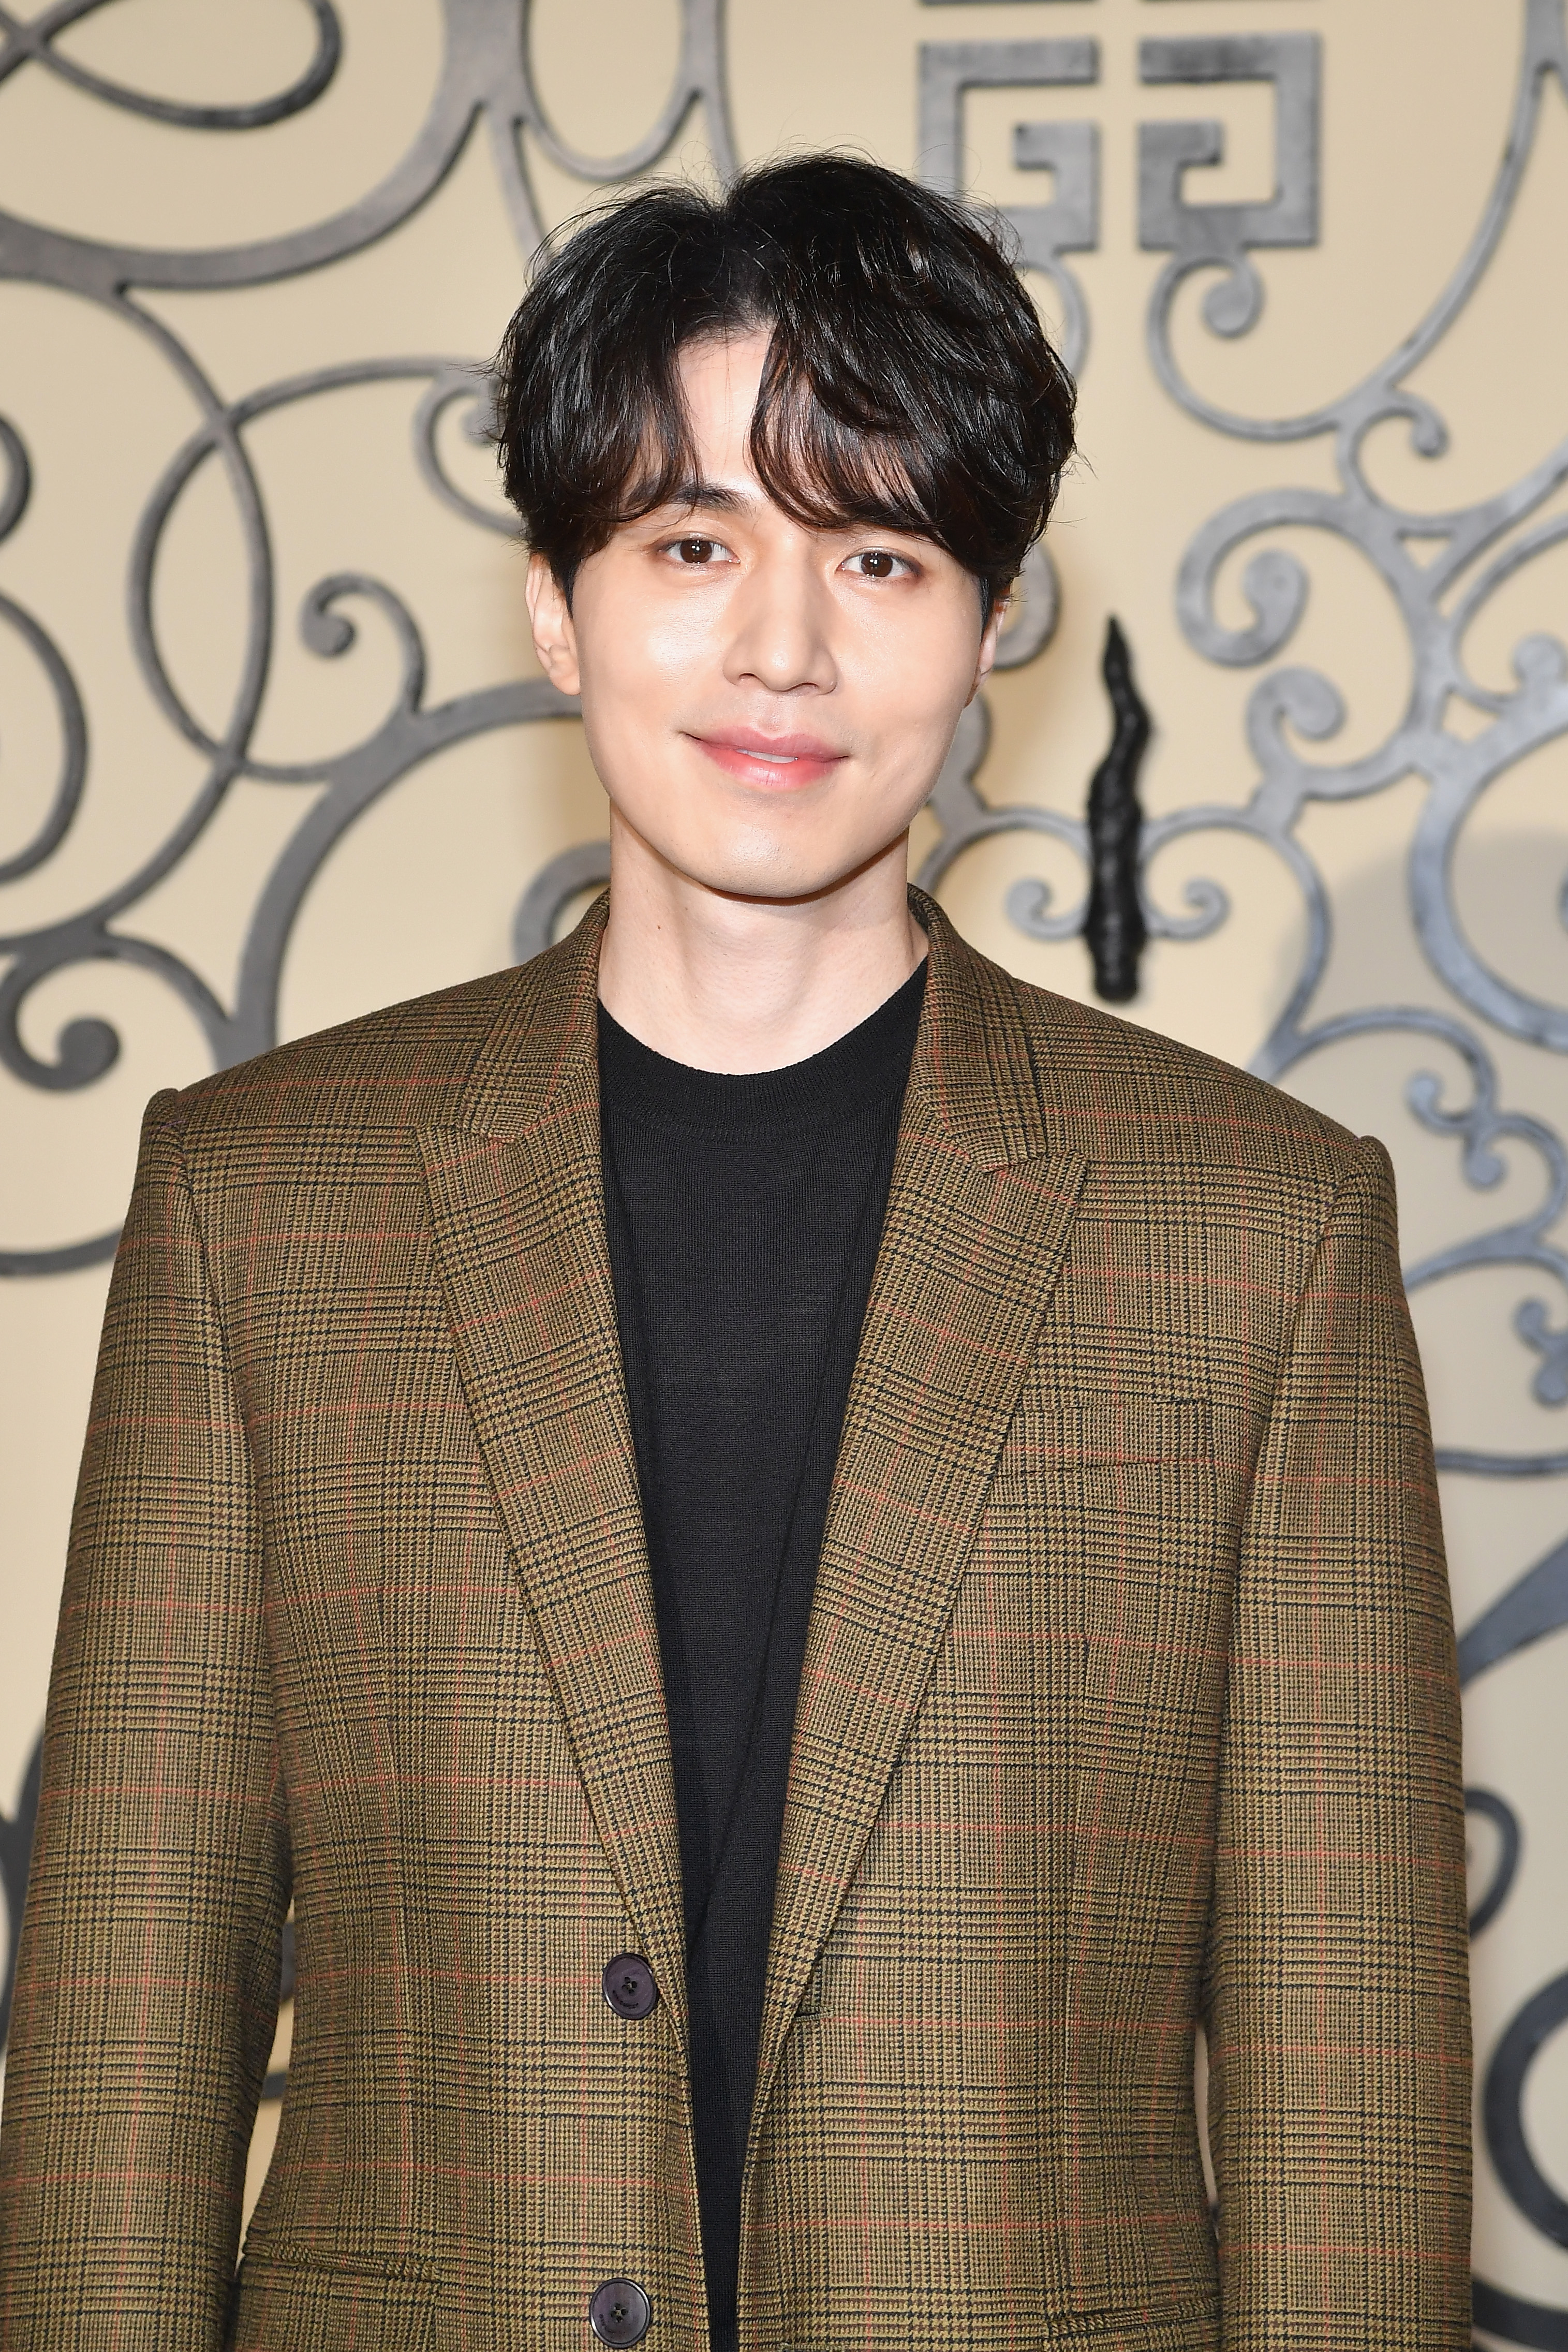 Lee Dong-wook attends the Givenchy show as part of the Paris Fashion Week Womenswear Spring/Summer 2018 on October 1, 2017 in Paris, France.